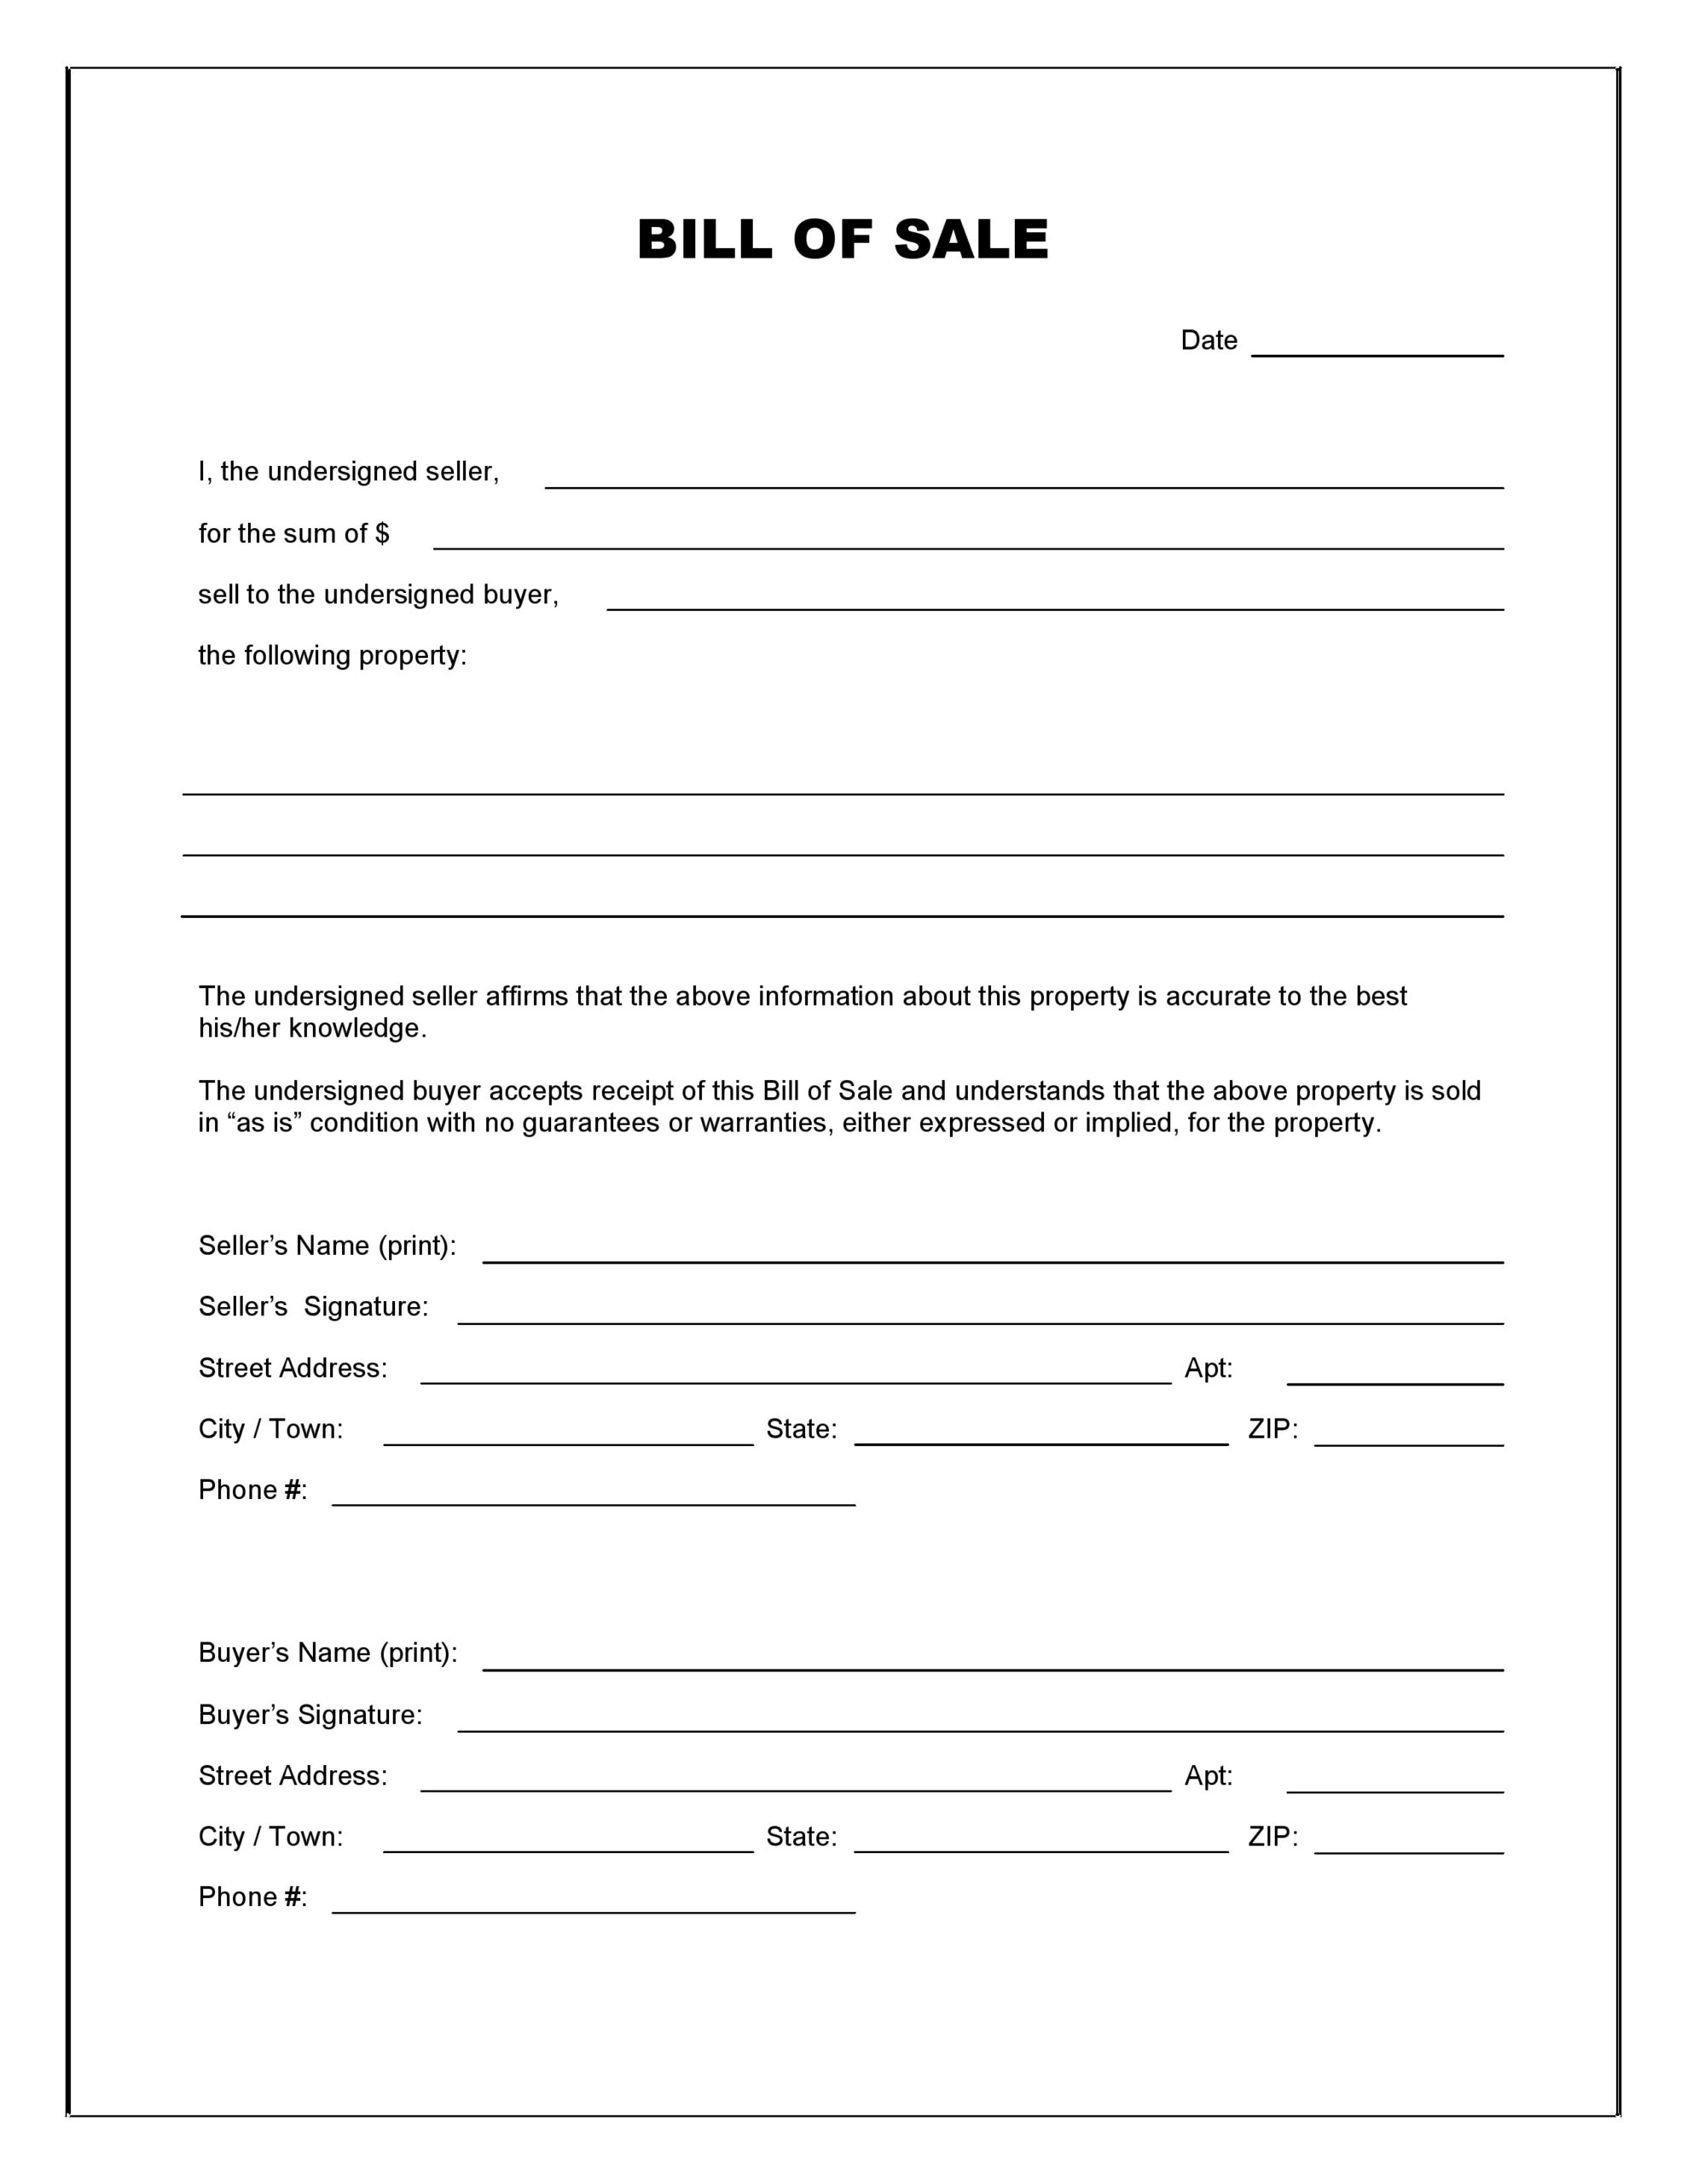 Free Blank Bill Of Sale Form | Pdf | Word | Do It Yourself Forms